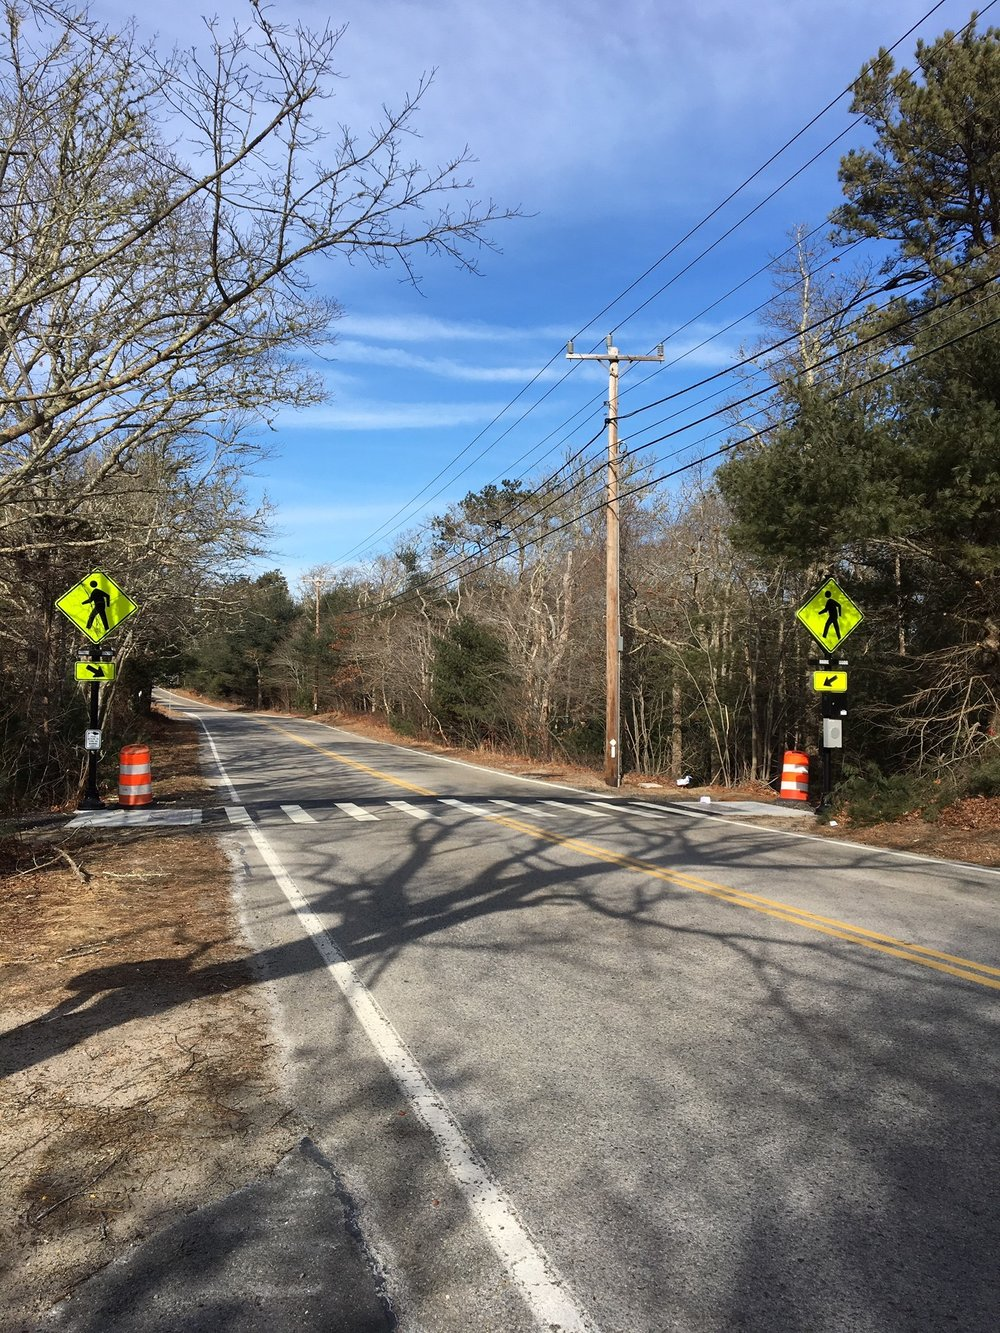 A new crosswalk across Long Pond Road features lights to alert drivers of pedestrians crossing.